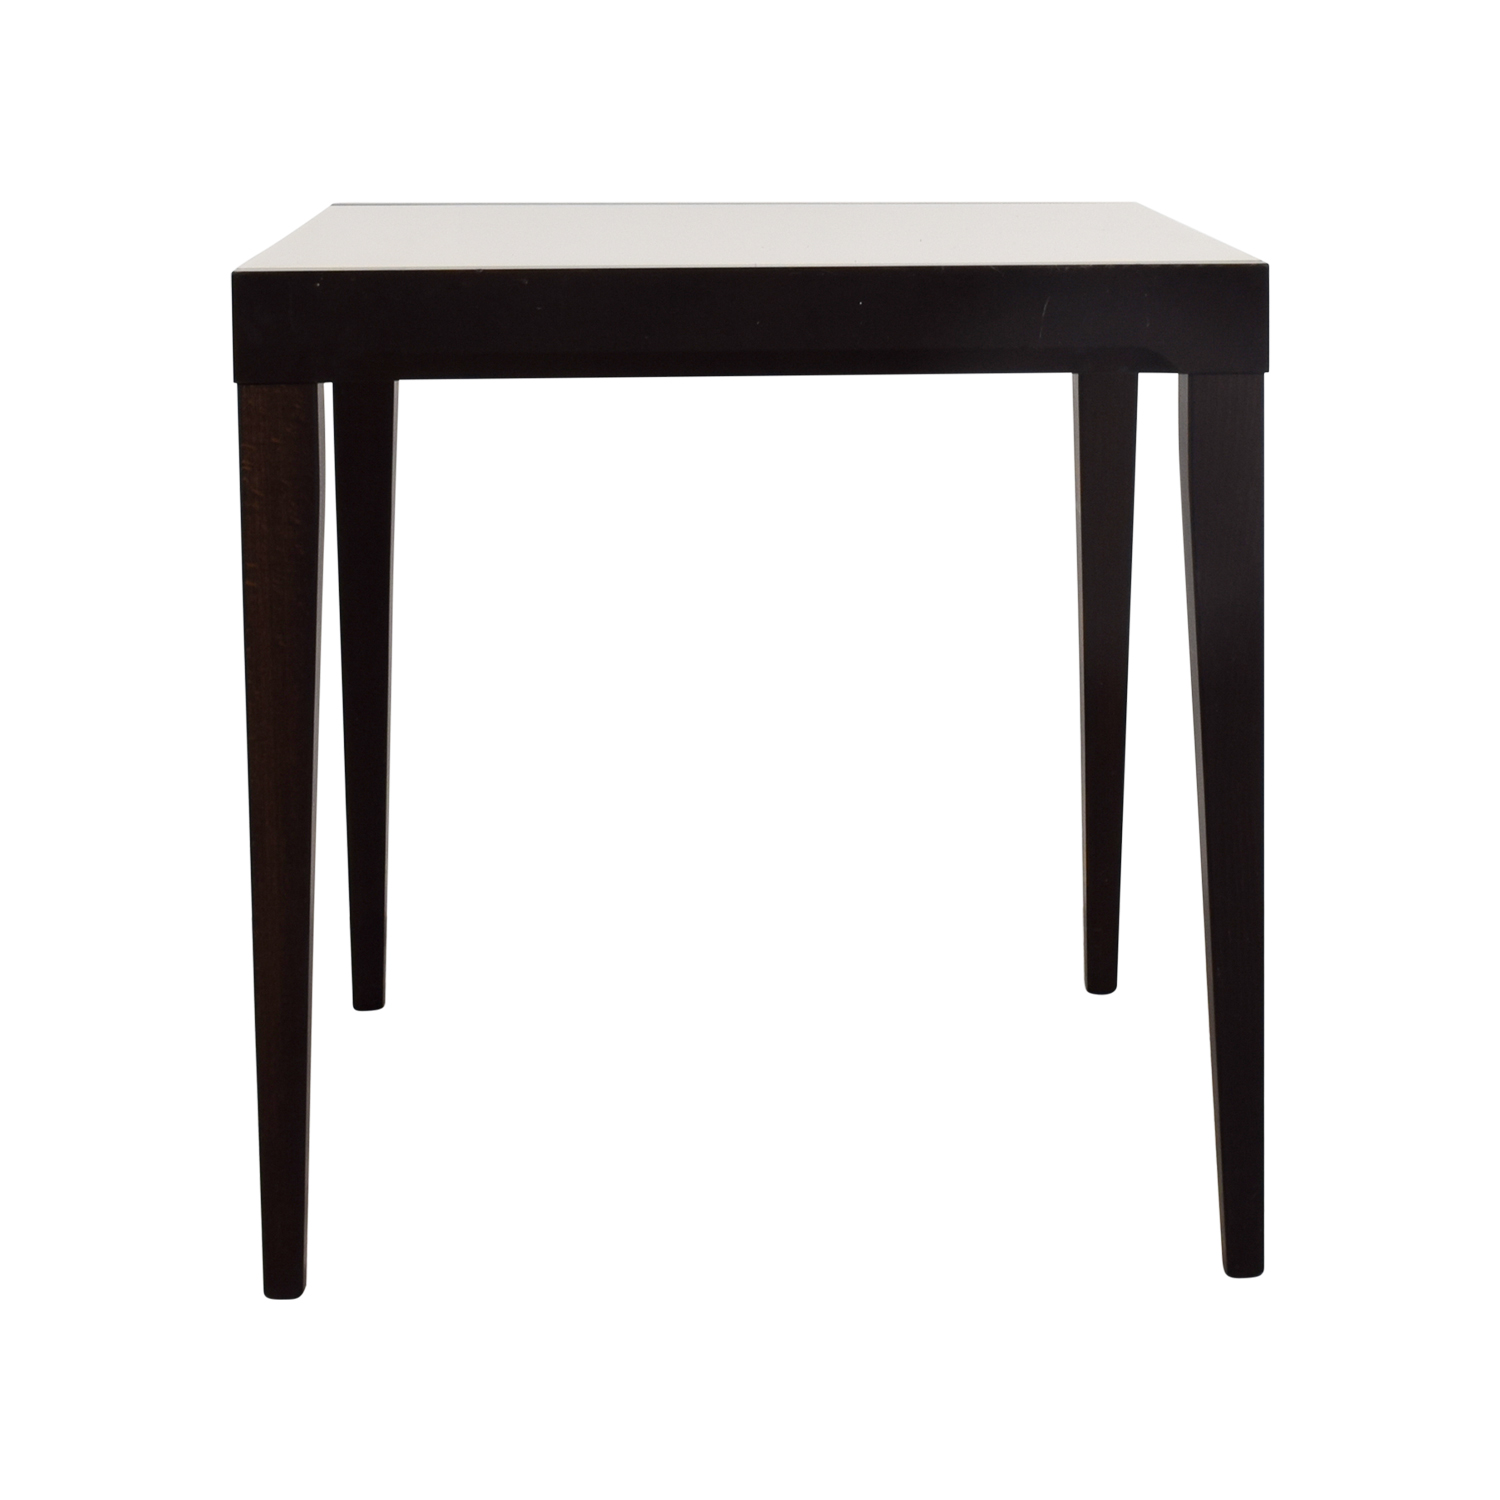 bar tables height table accent seater legs small round long kitchen base bistro tall glass full size porch furniture black area rugs tiled garden kidney coffee target gold foot